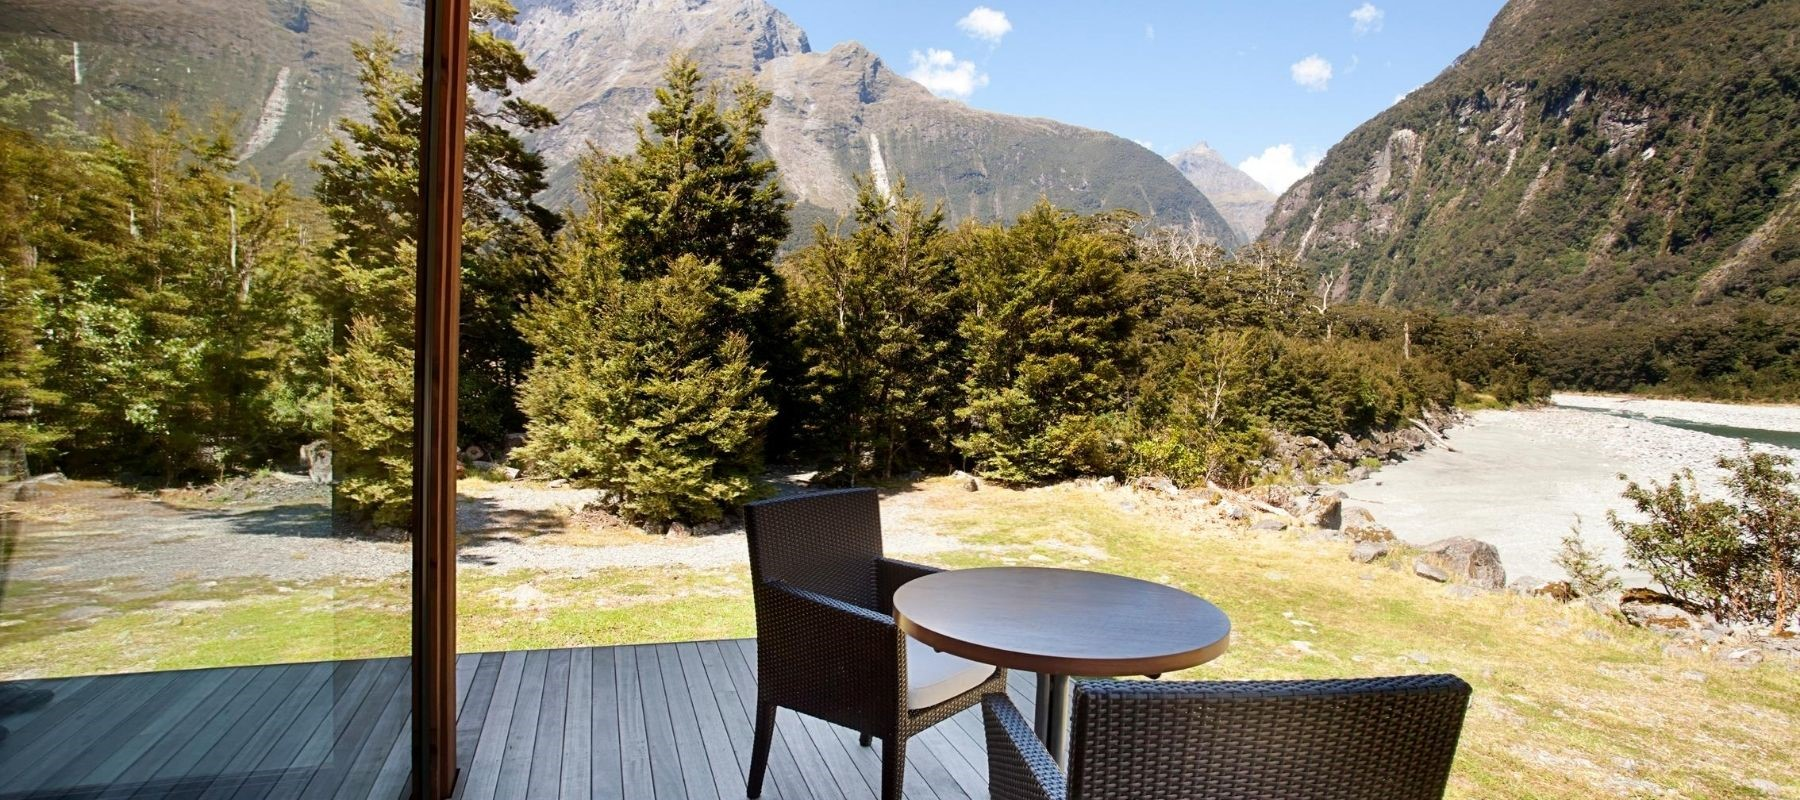 The deck at Milford Sound Lodge Riverside Chalet's with a table and chairs, looking over the river.